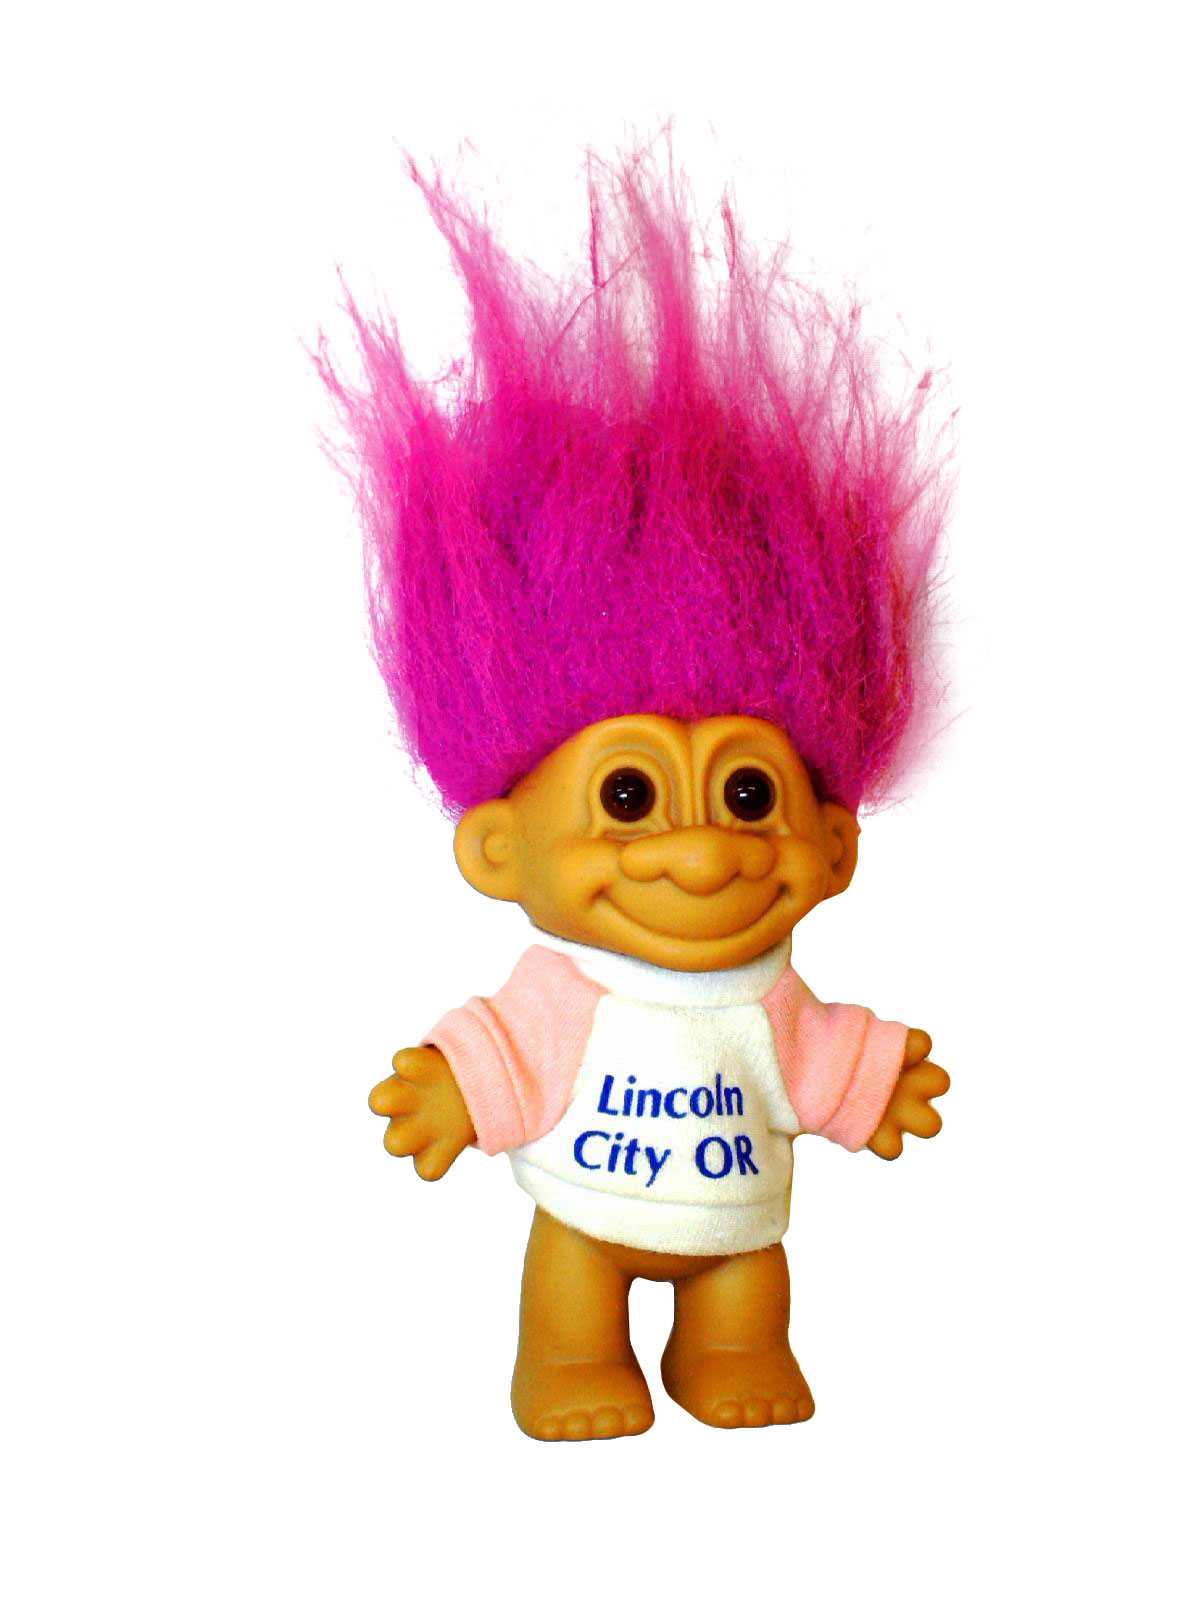 1990's Russ China Home Decor - Troll Doll